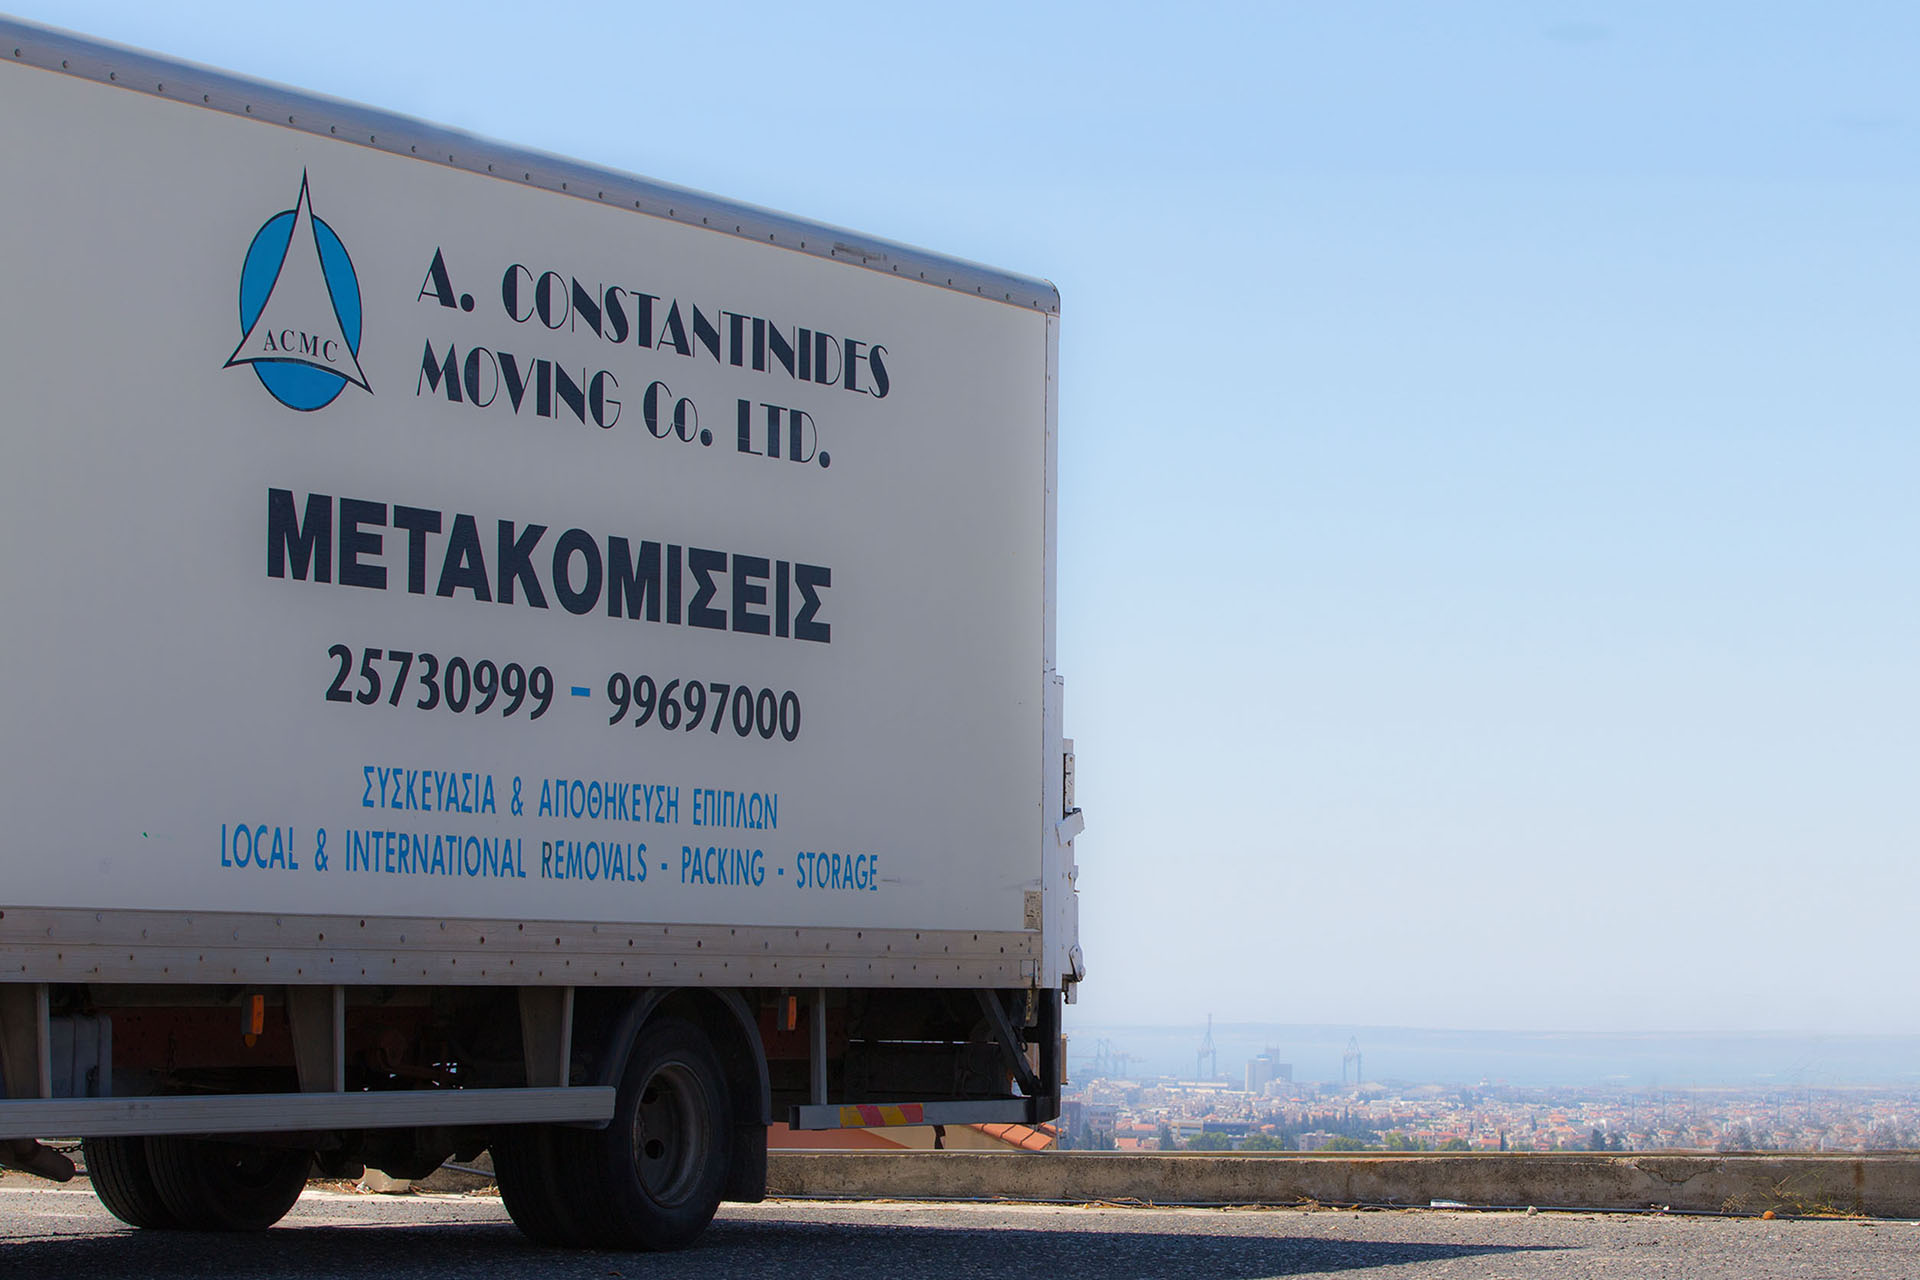 acmc moving services - Constantinides - Cyprus